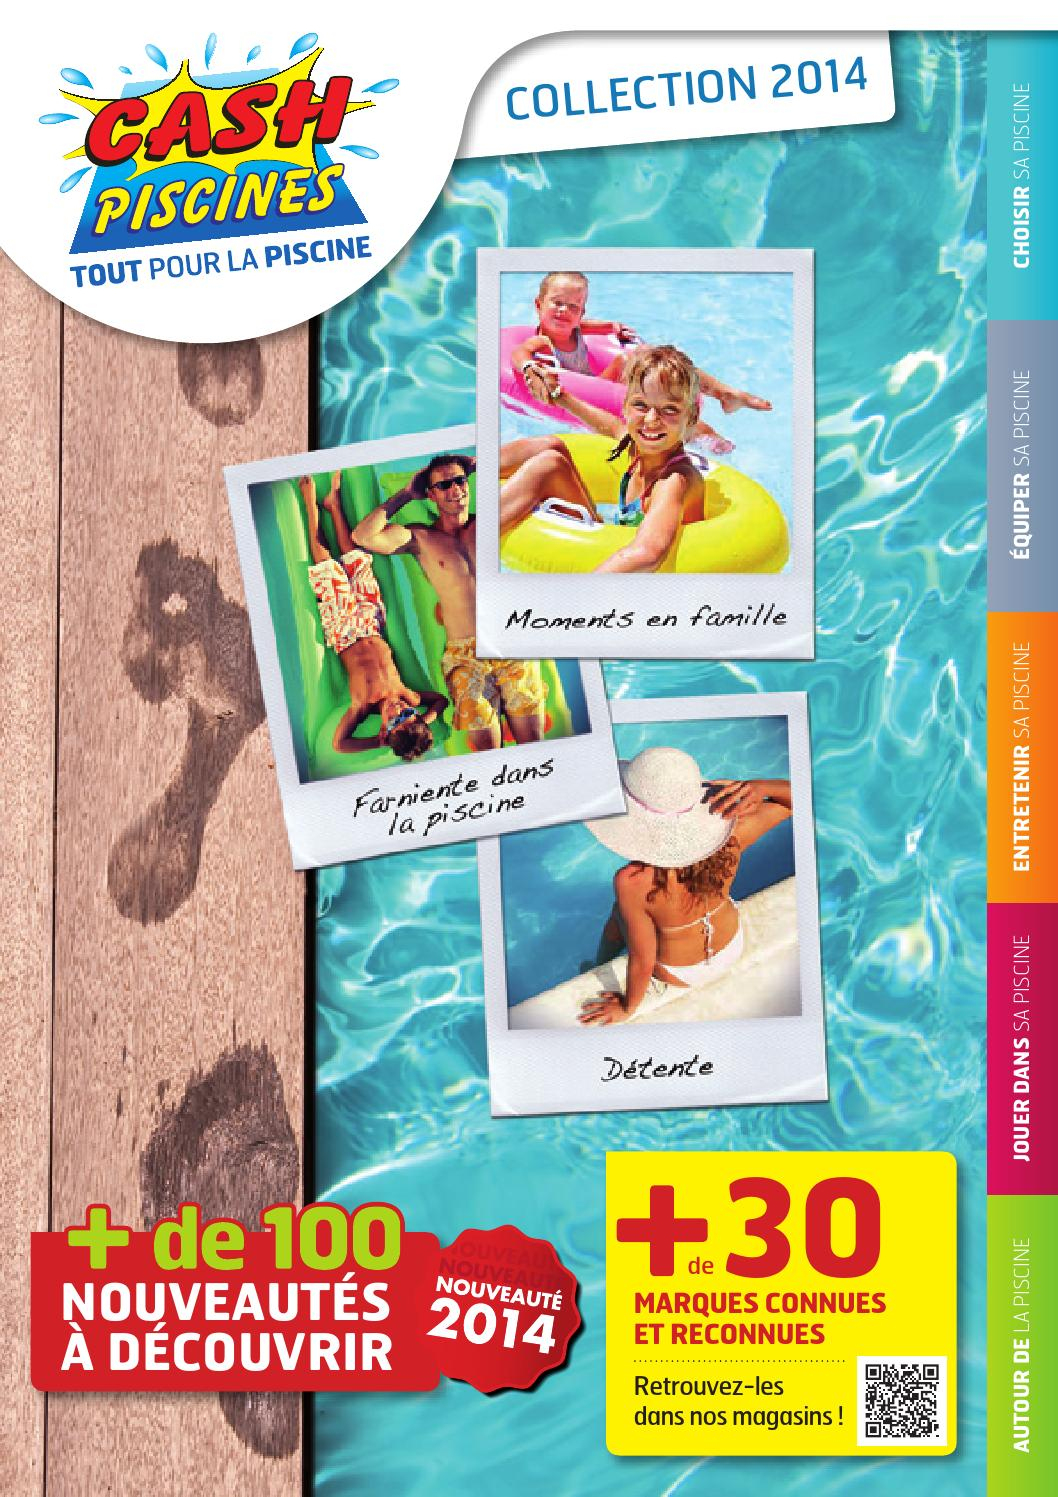 Cash Piscines Catalogue 2014 By Octave Octave - Issuu à Cash Piscine Catalogue